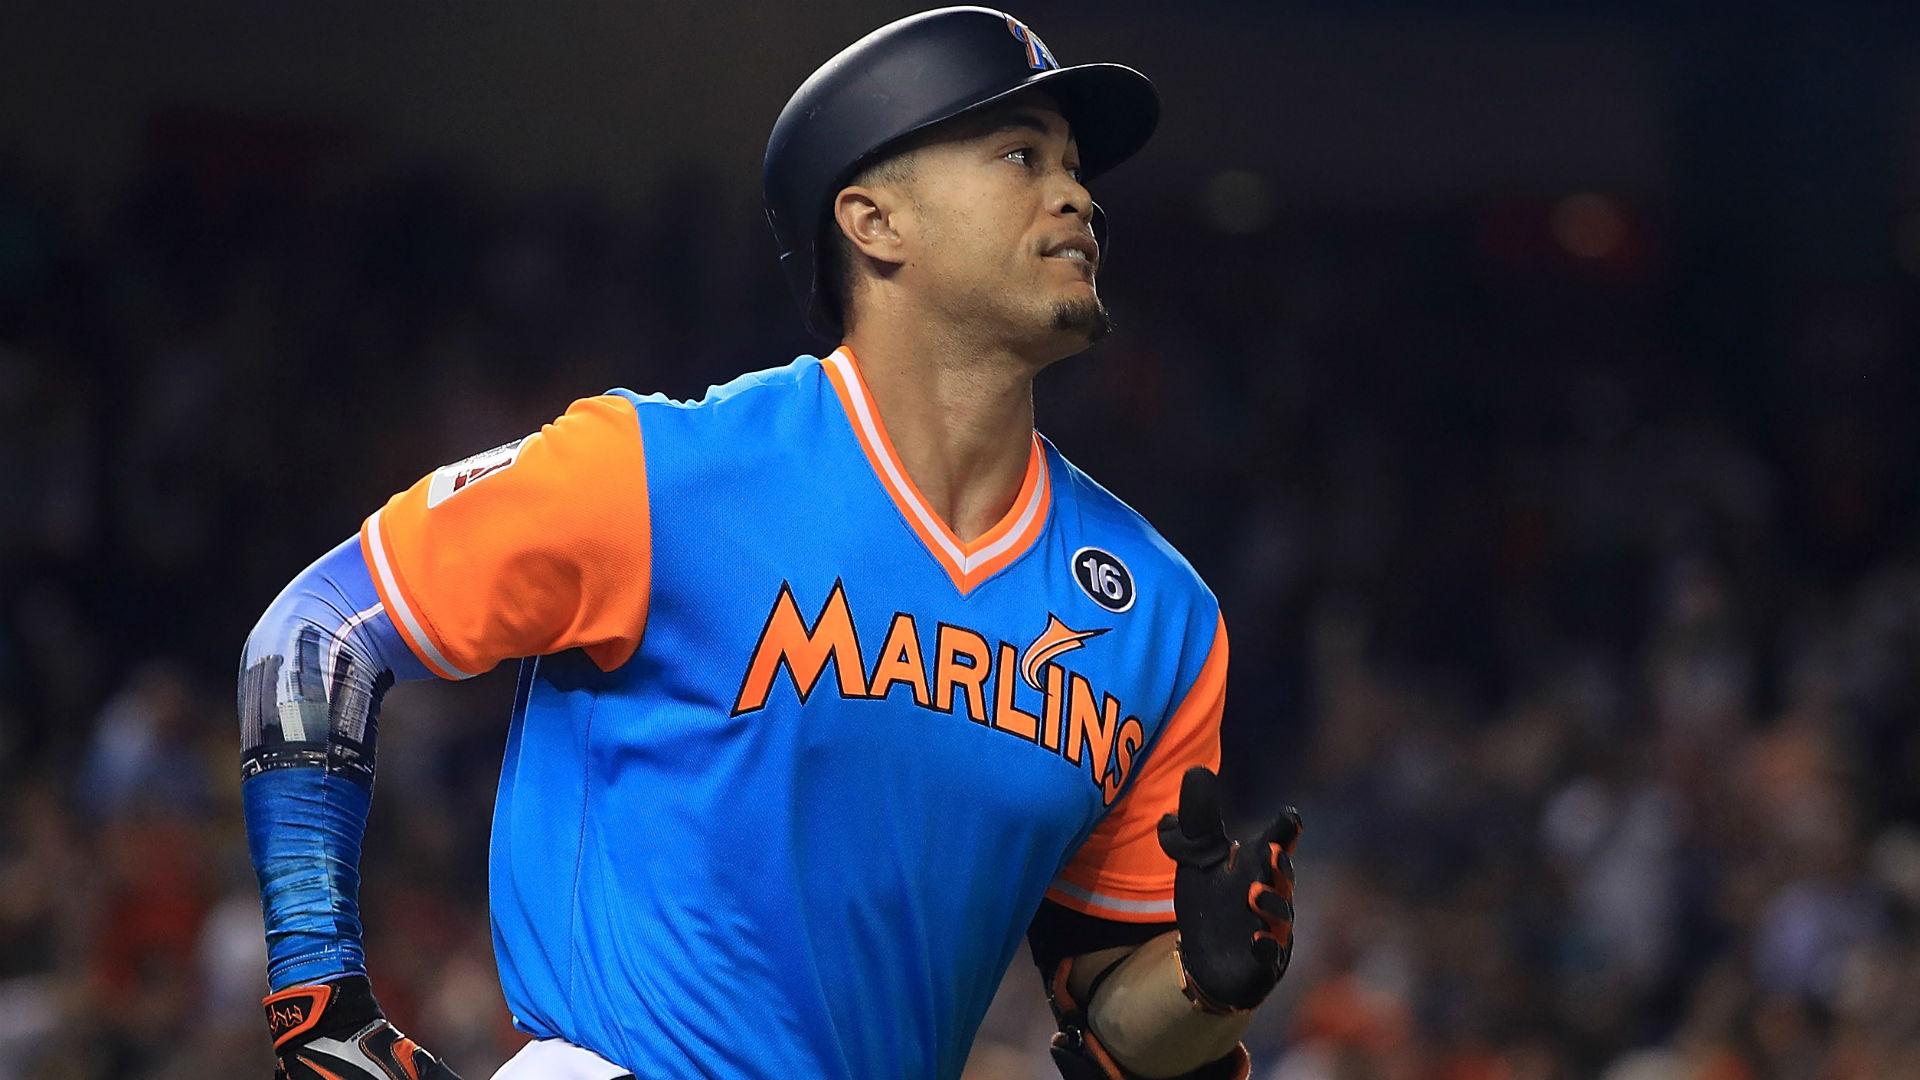 Red Sox not aggressively pursuing Giancarlo Stanton